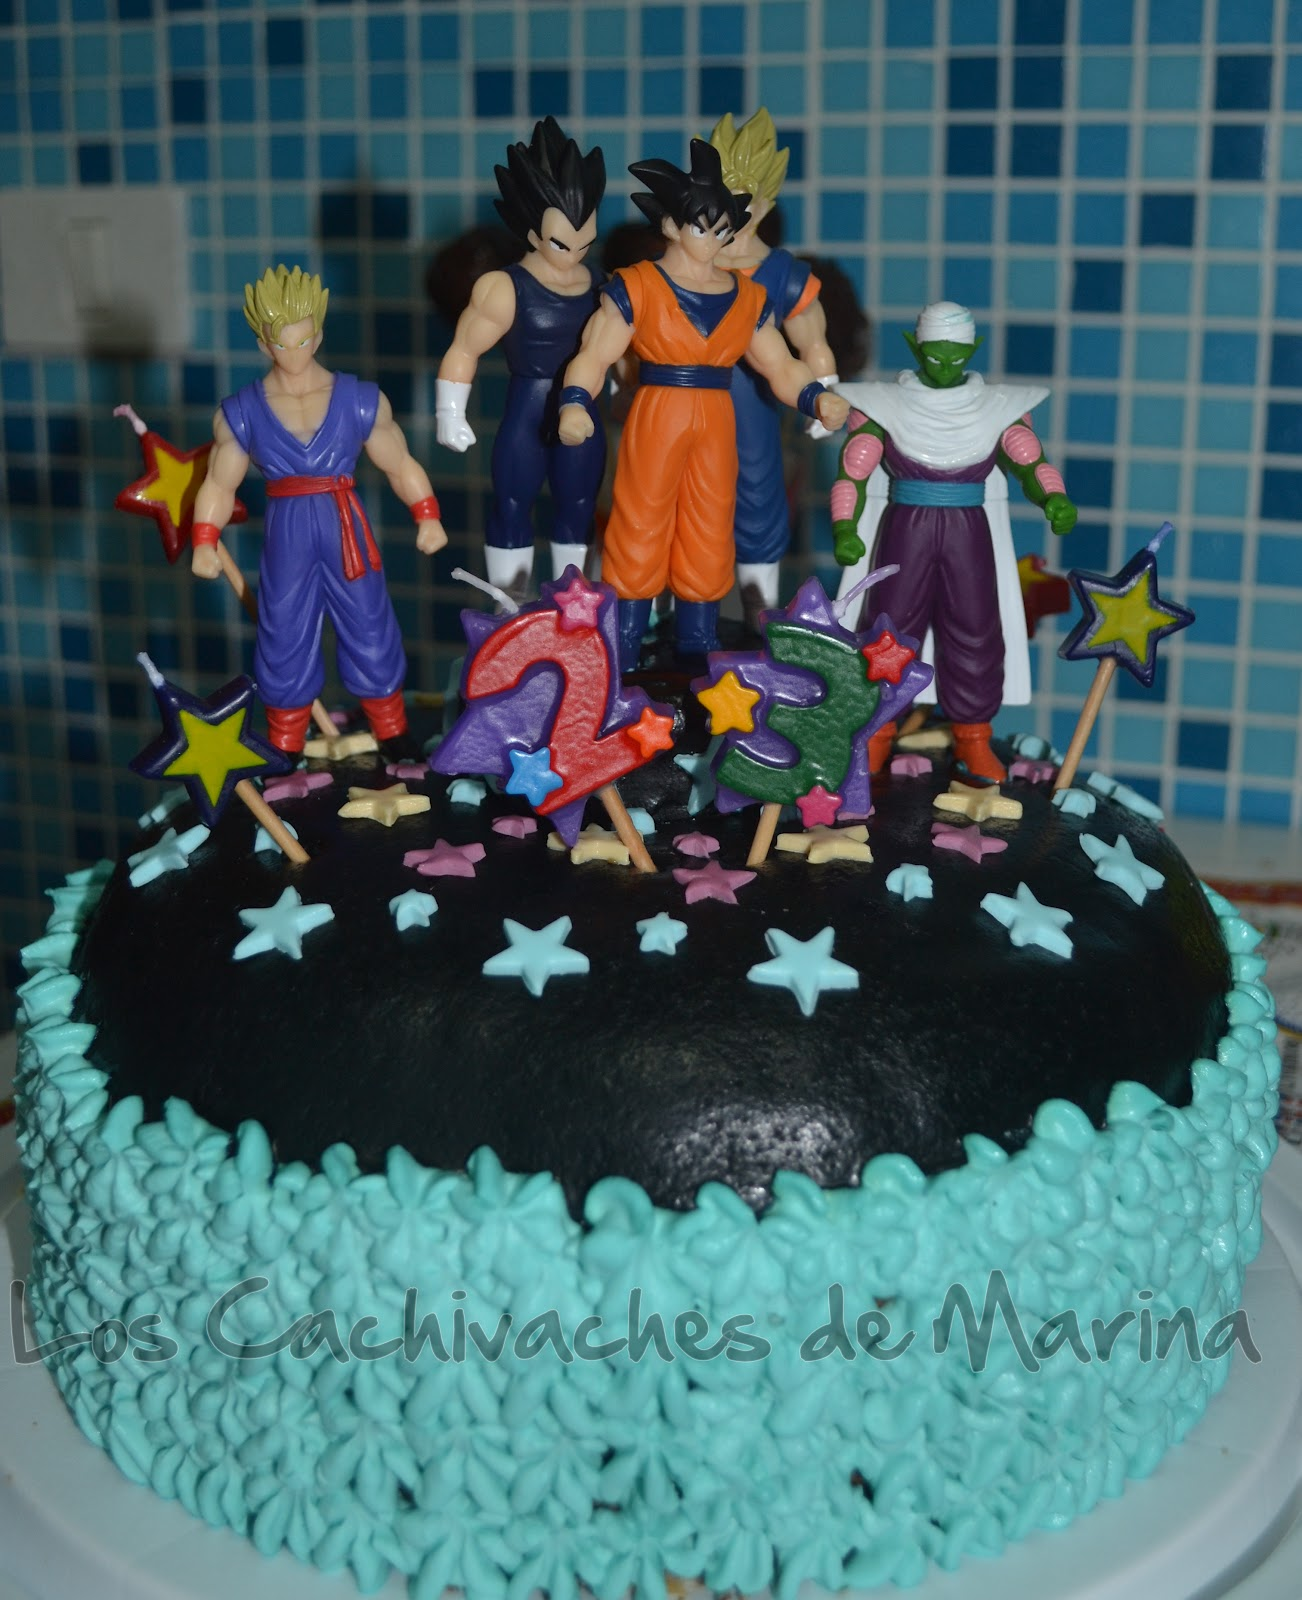 Los Cachivaches de Marina: Tarta de Dragon Ball Z